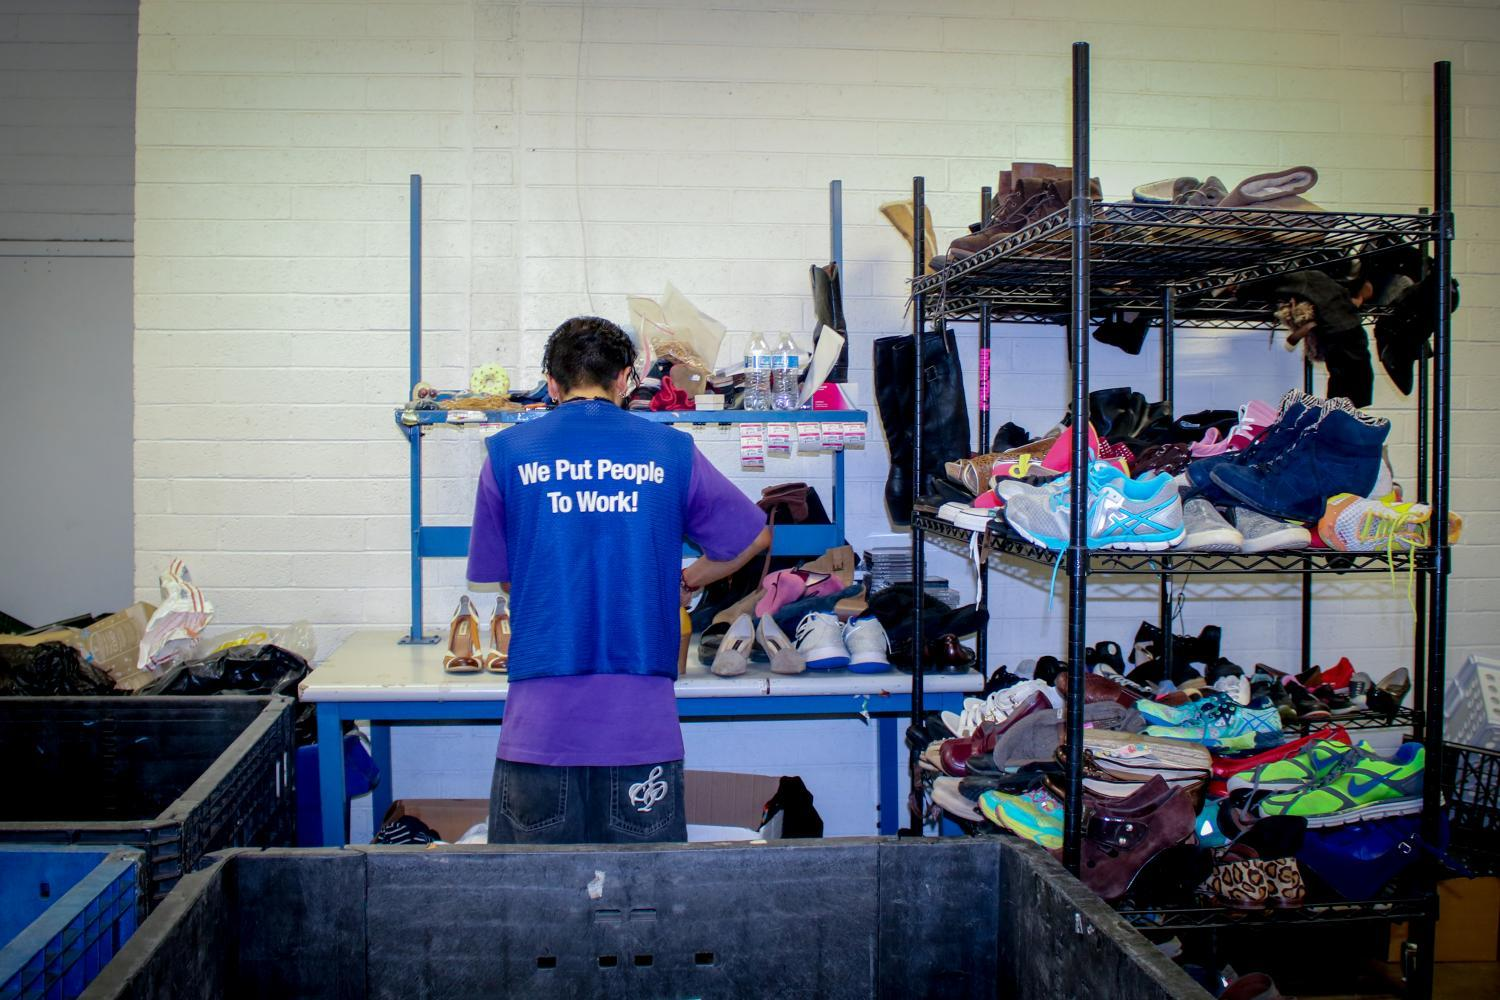 There are 115 Goodwill stores in Arizona and in 2017 made over $143,000,000 from the resale of donated goods.